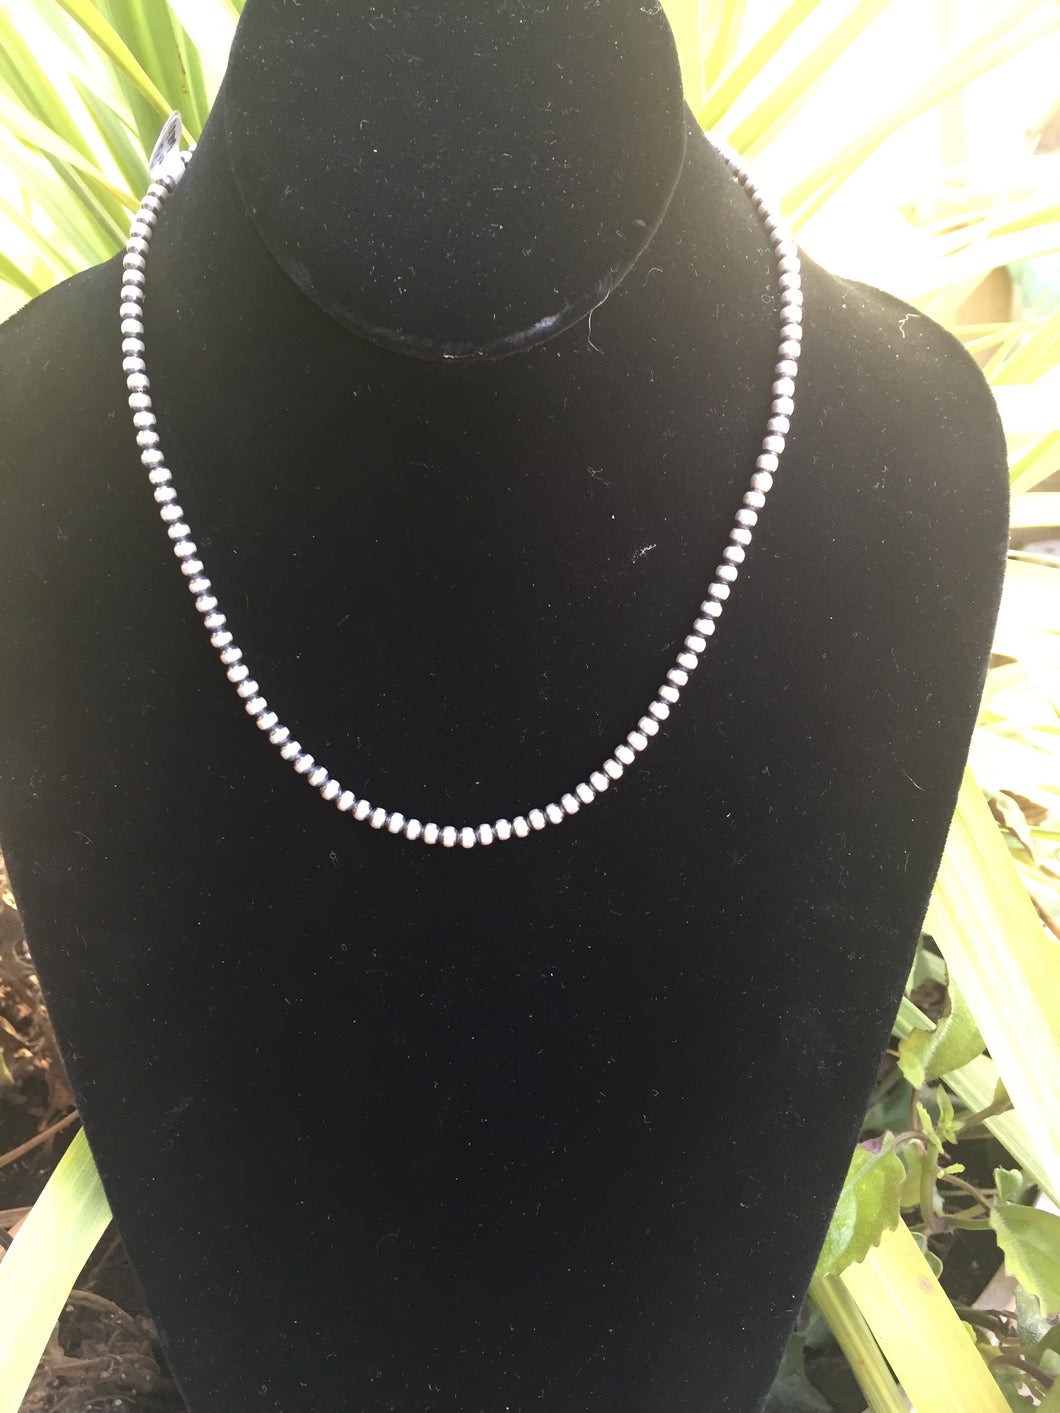 Micro Navajo pearls 4mm 18 inches